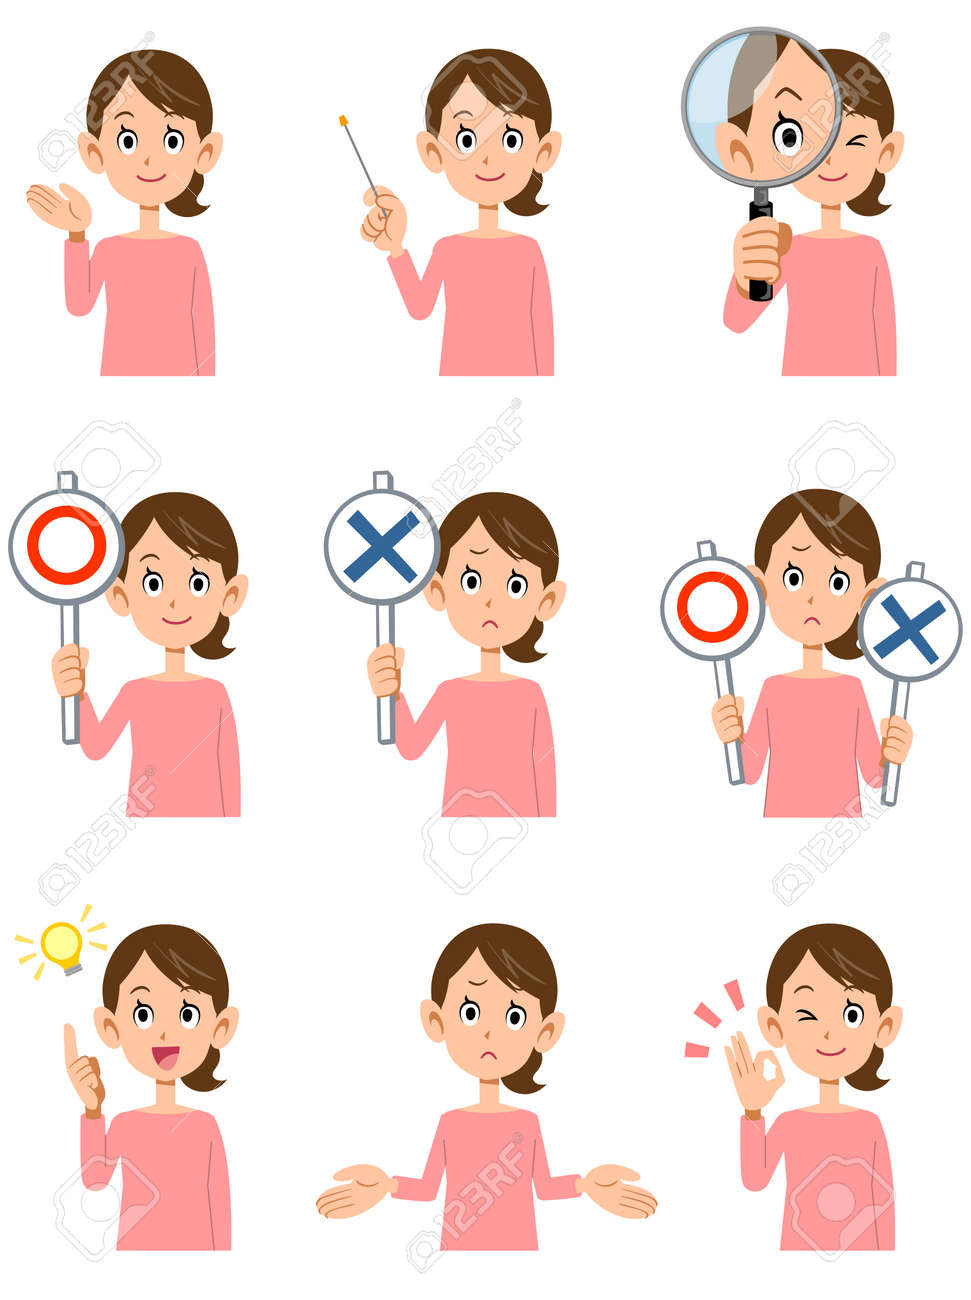 Nine women's gestures and facial expressions - 59952873